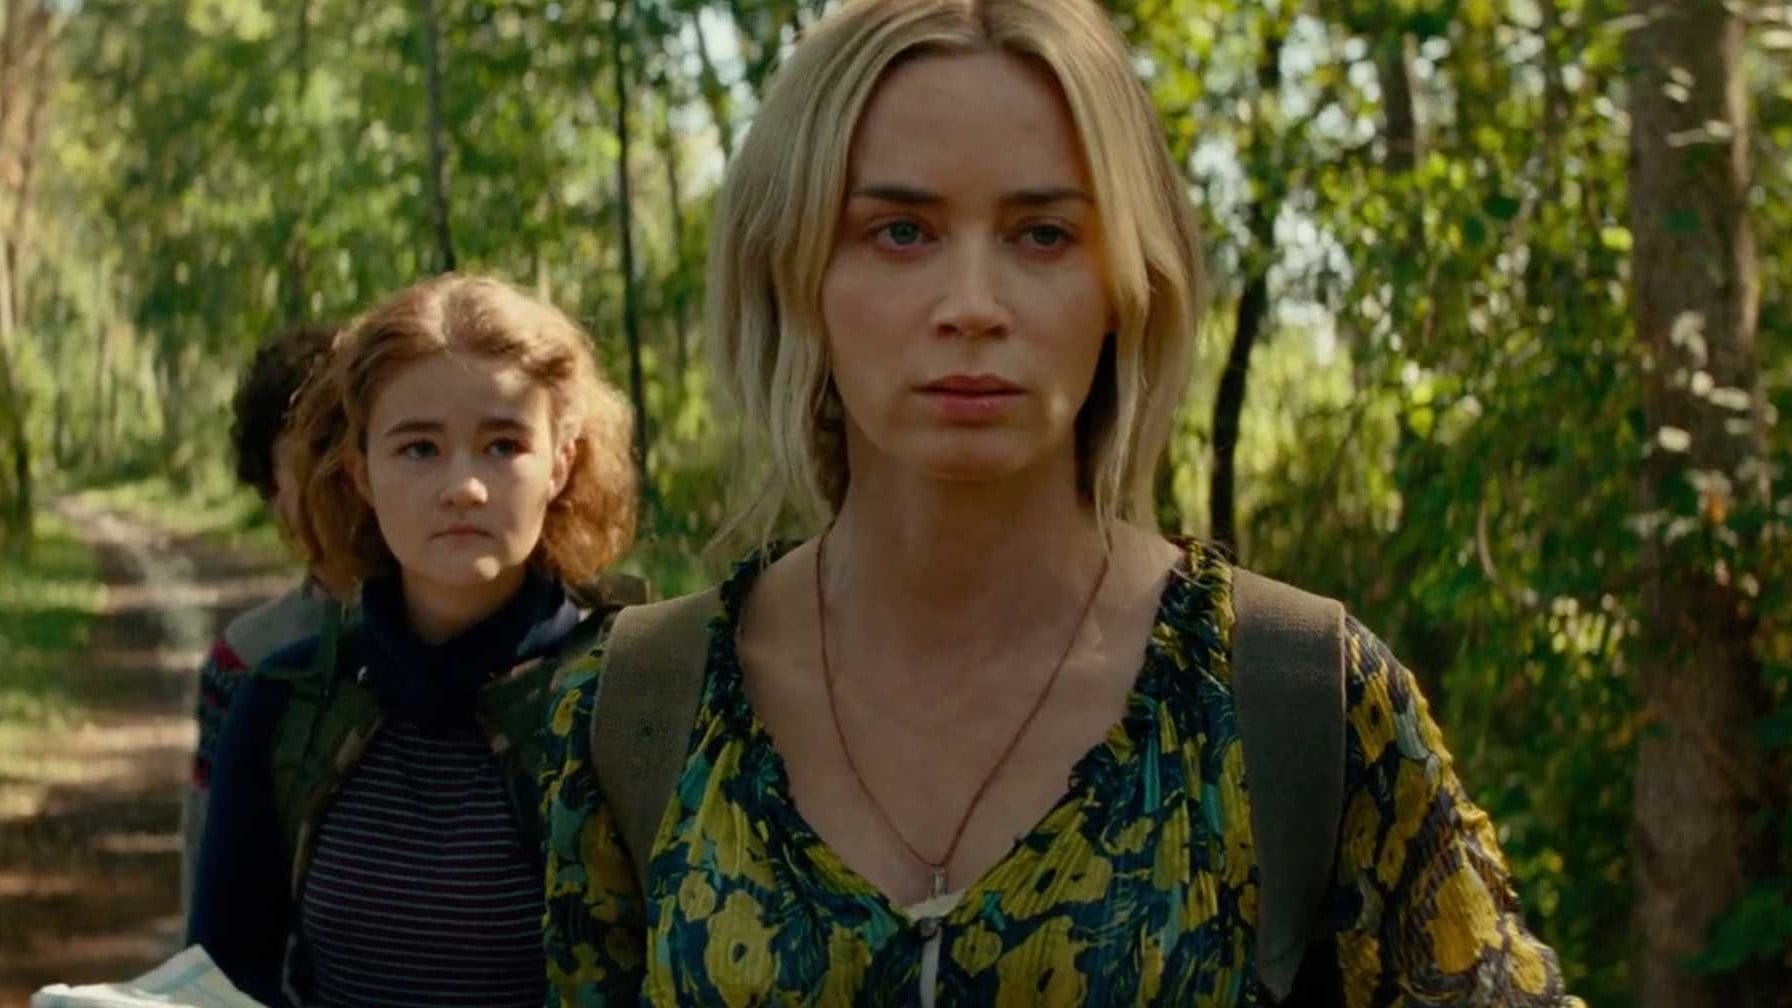 A Quiet Place 3 release date